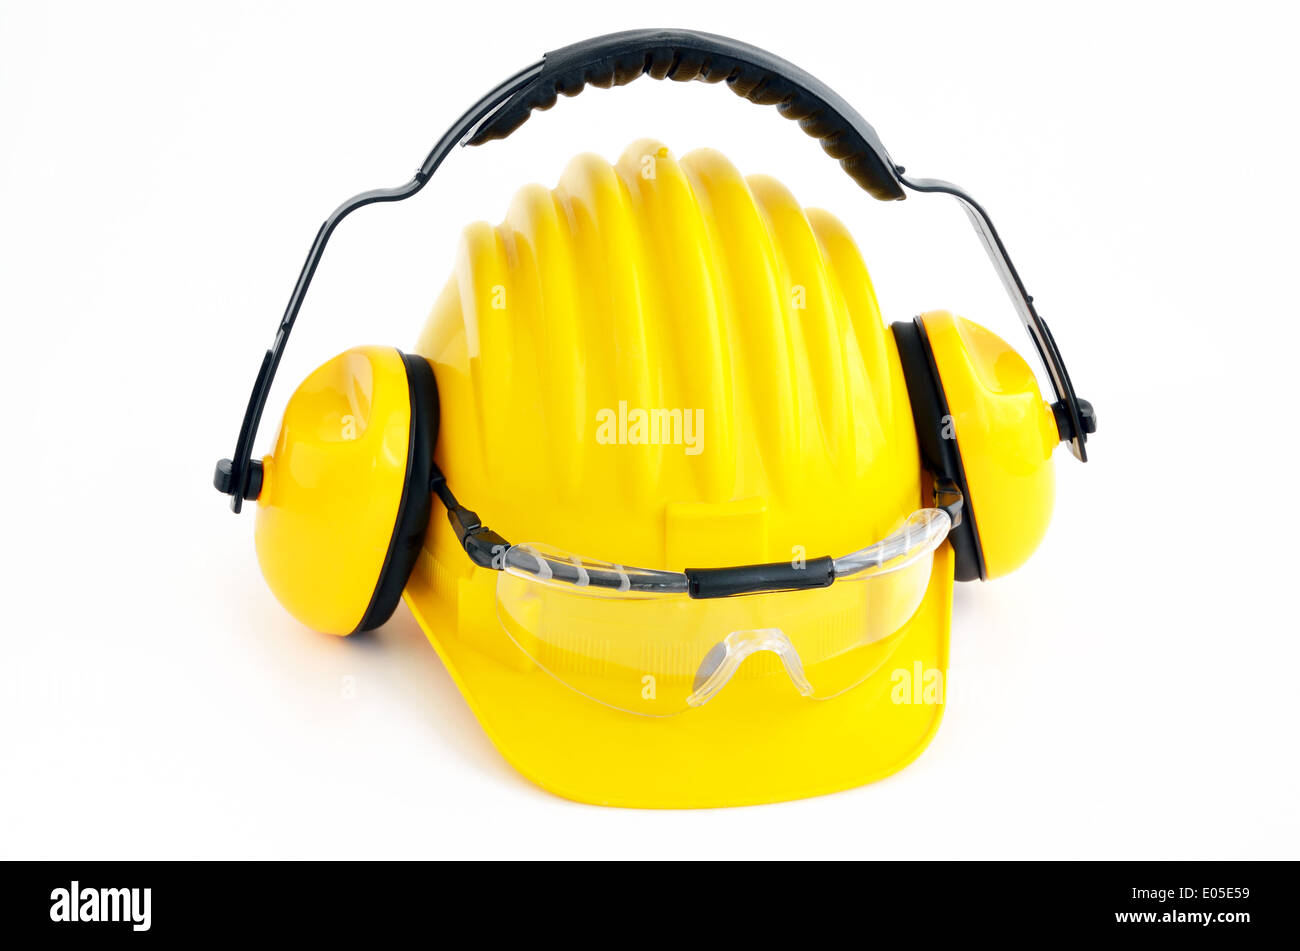 hard hat, goggles and ear muffs isolated on white - Stock Image